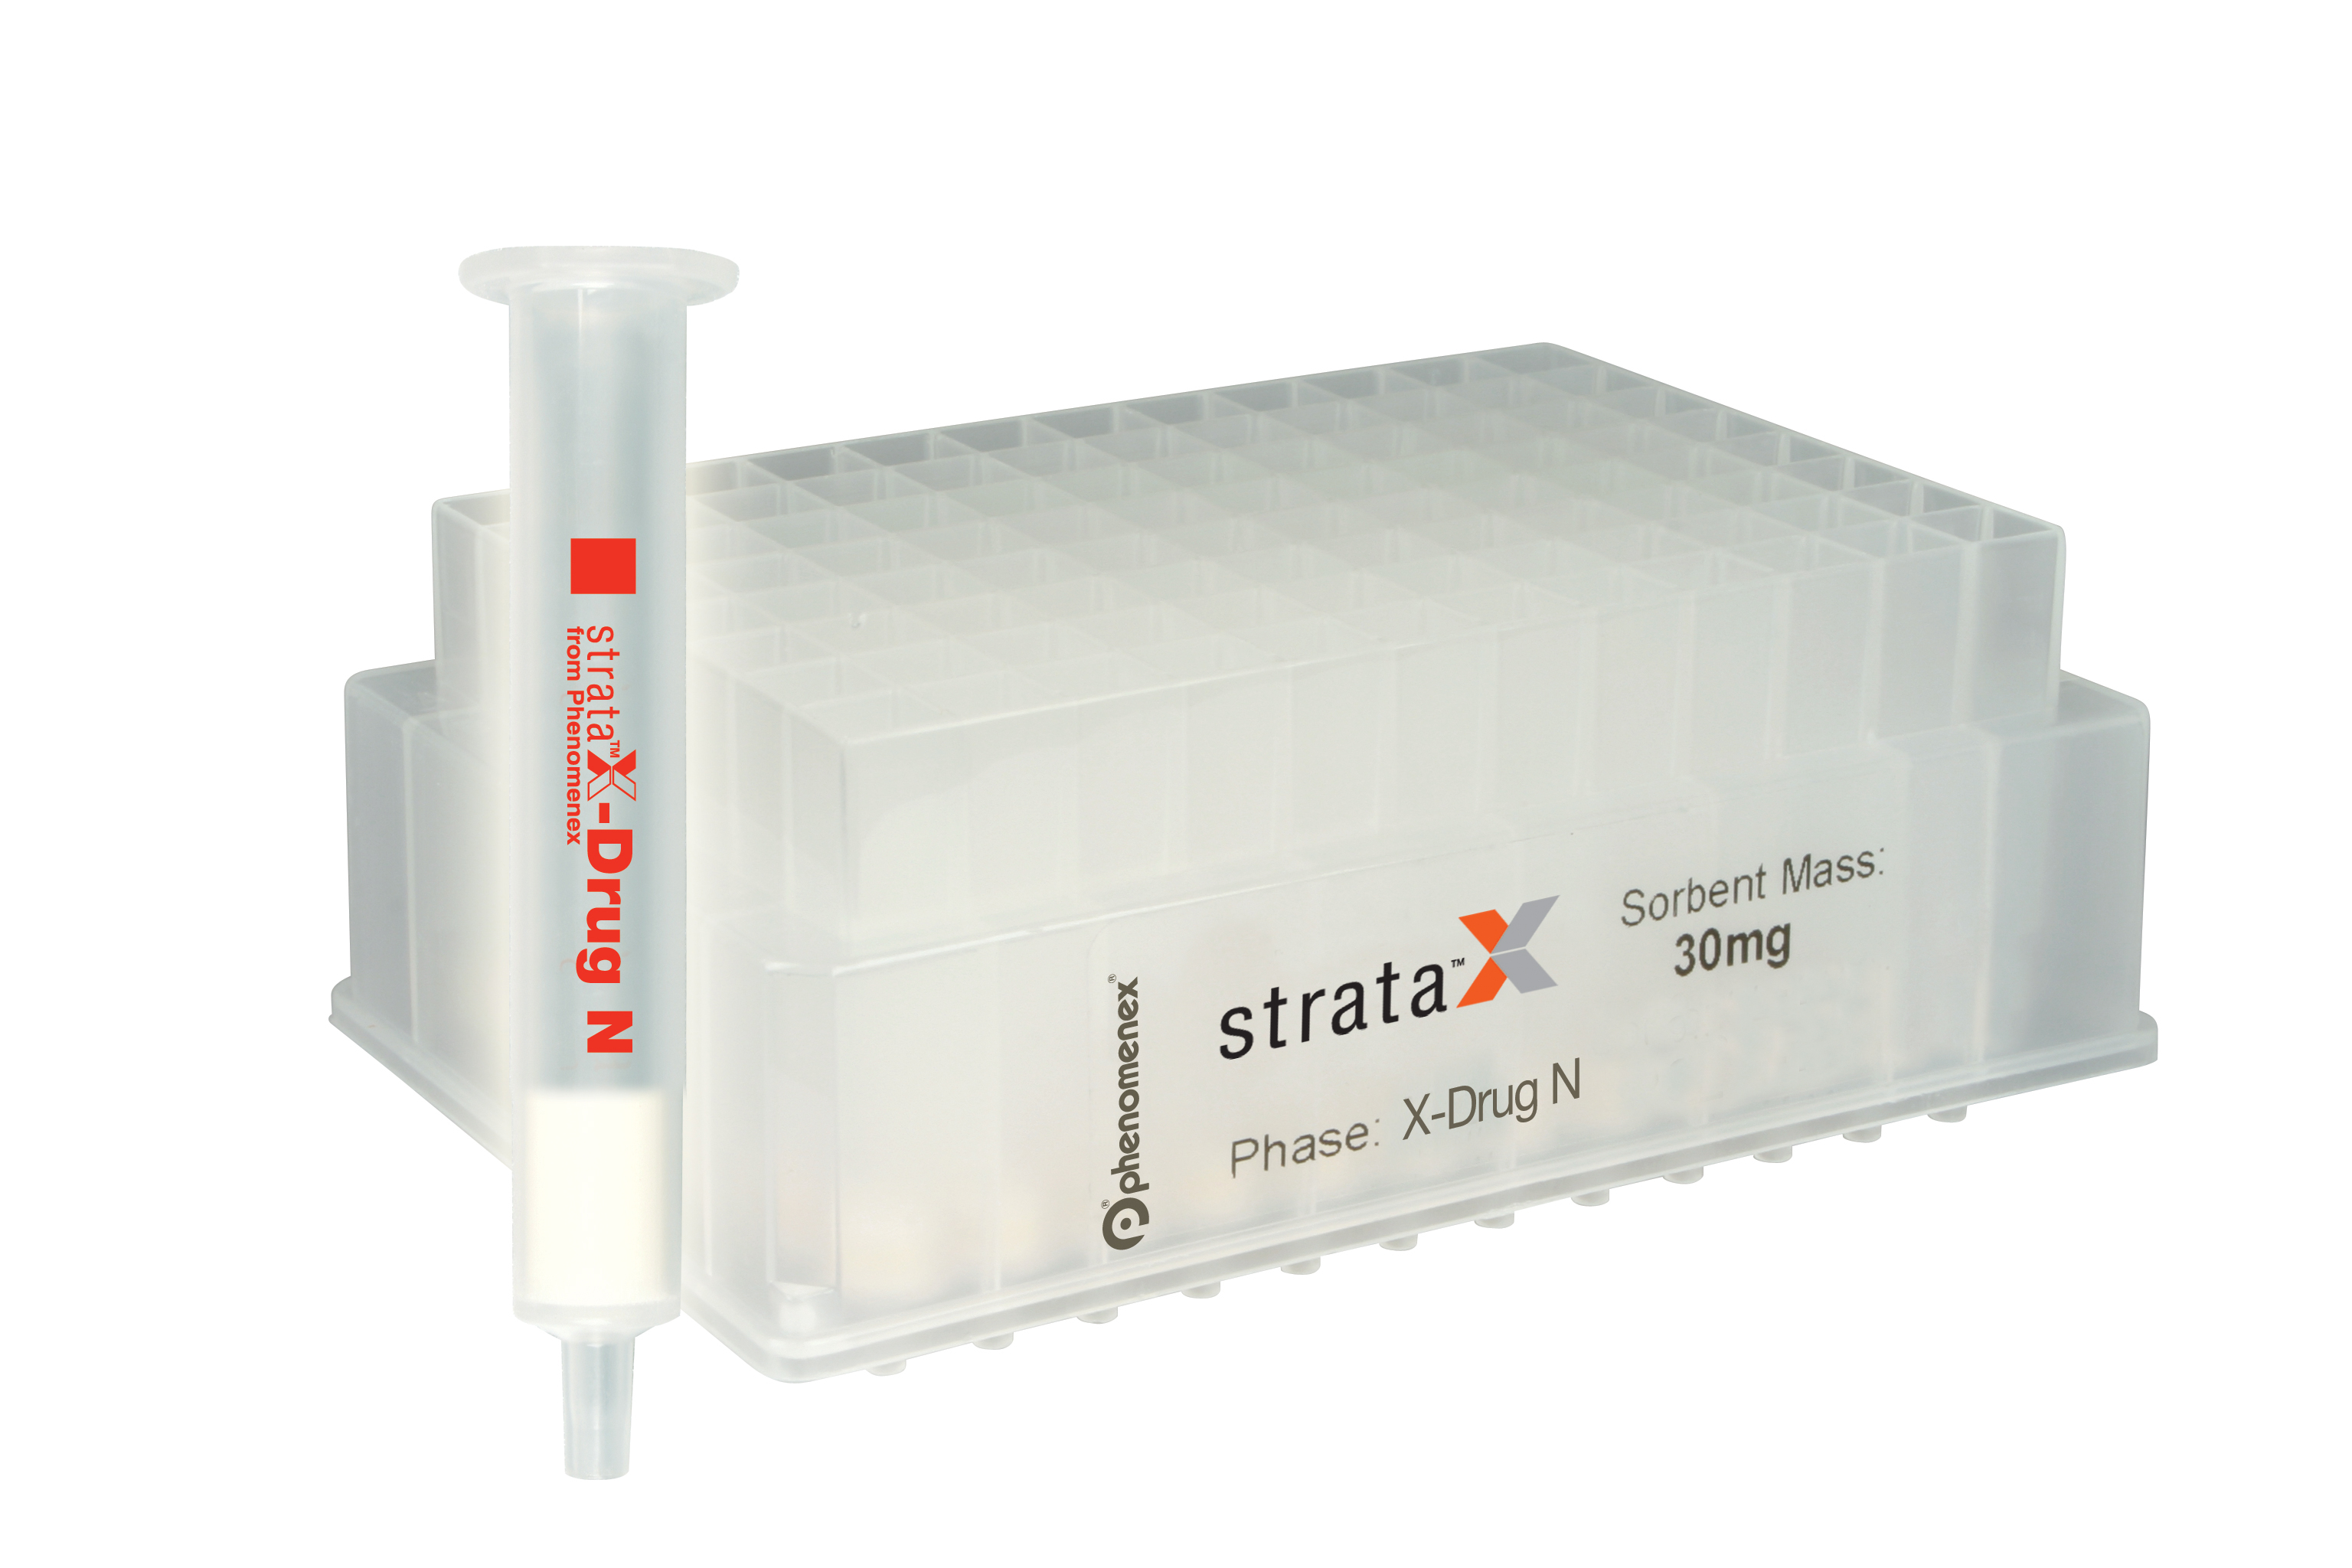 Strata-X-Drug N by Phenomenex Inc thumbnail